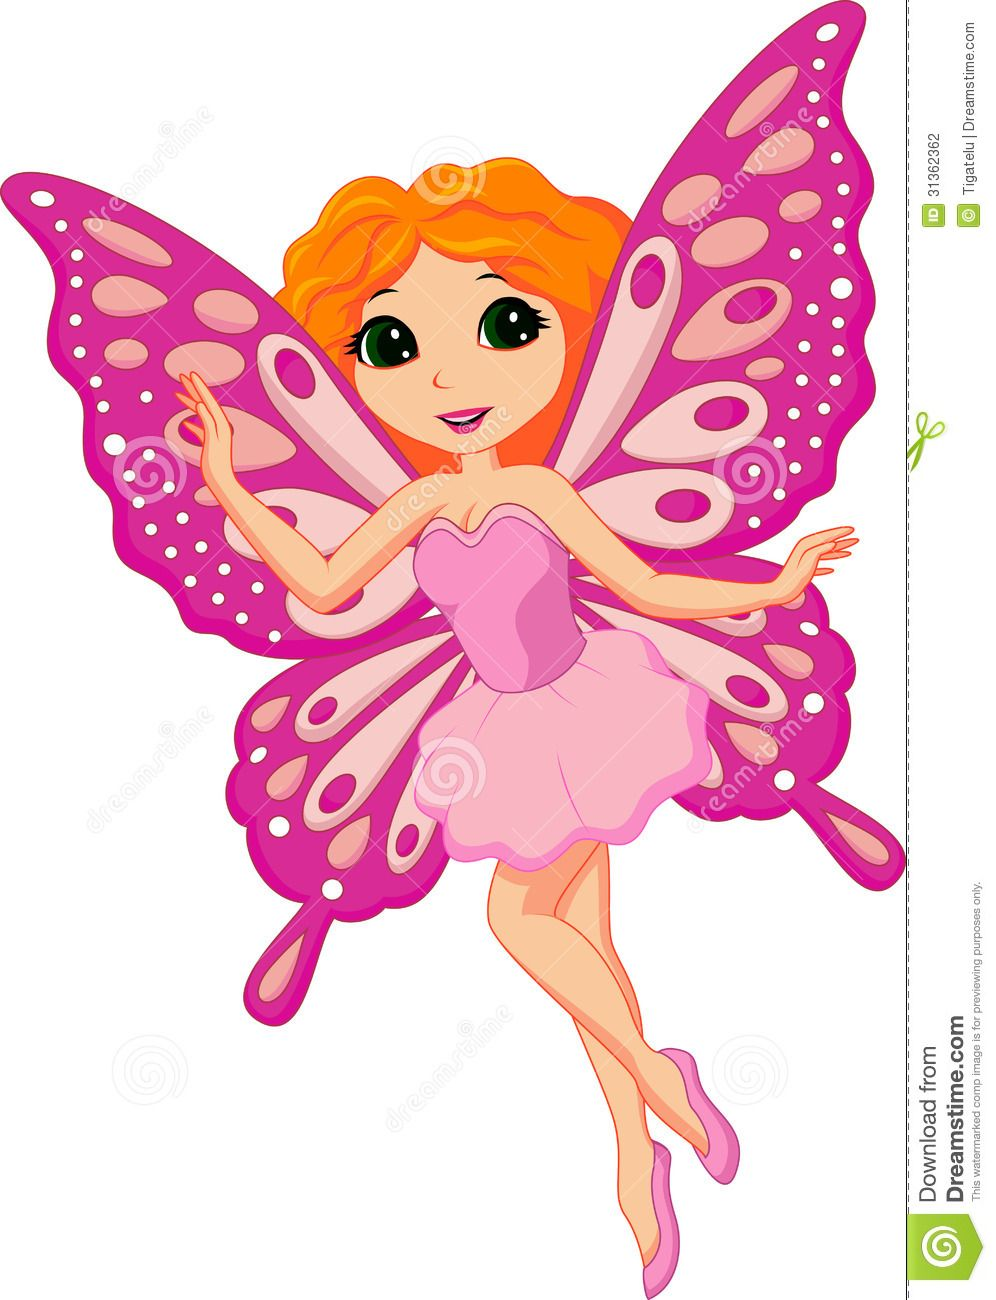 Beautiful pink fairy cartoon download from over 30 million high quality stock photos images - Beauti ful carteans pic hd ...